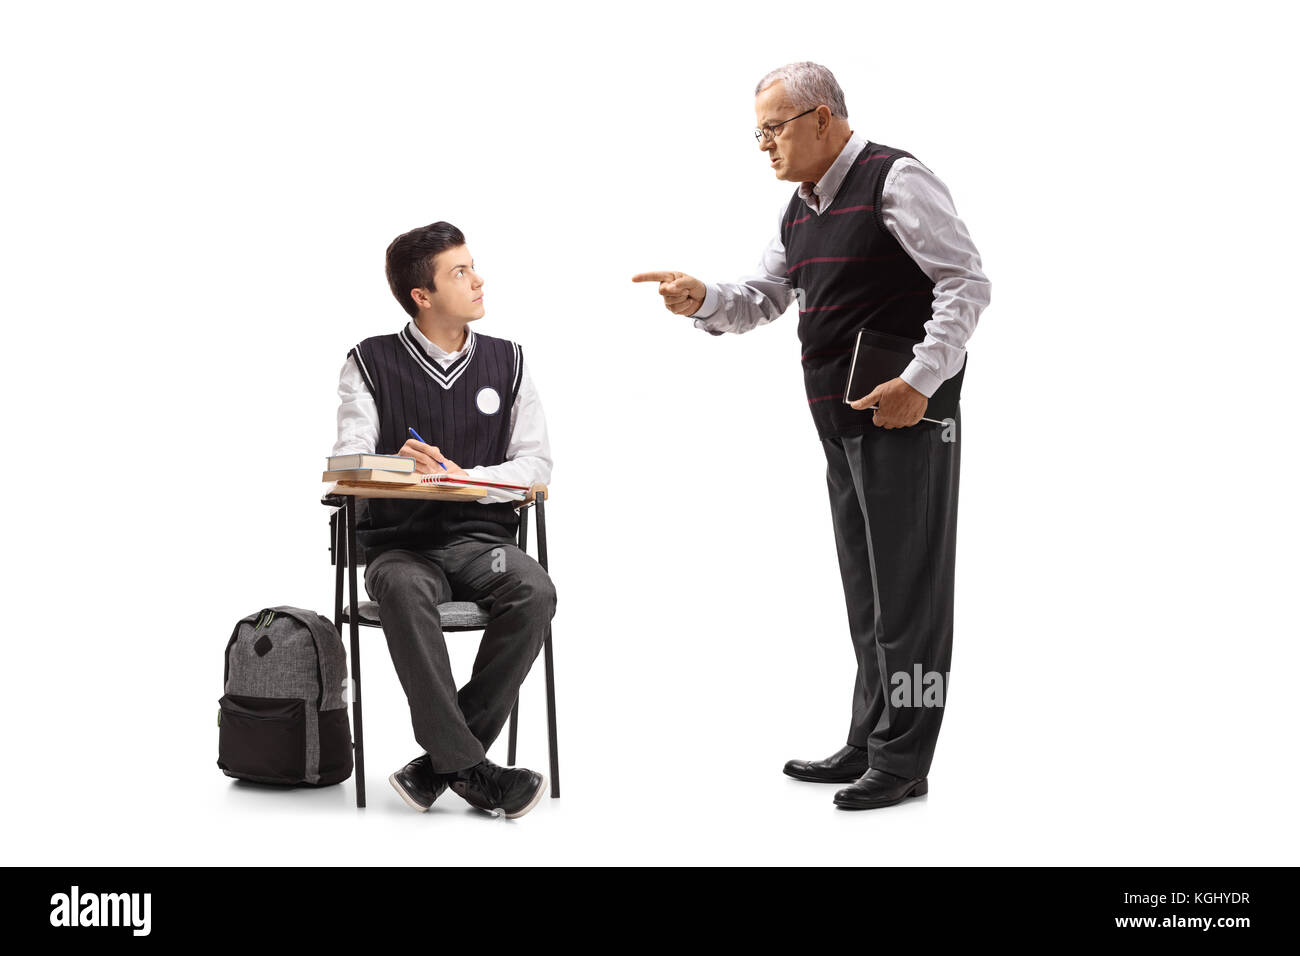 Teacher scolding a teenage student seated in a school chair isolated on white background - Stock Image